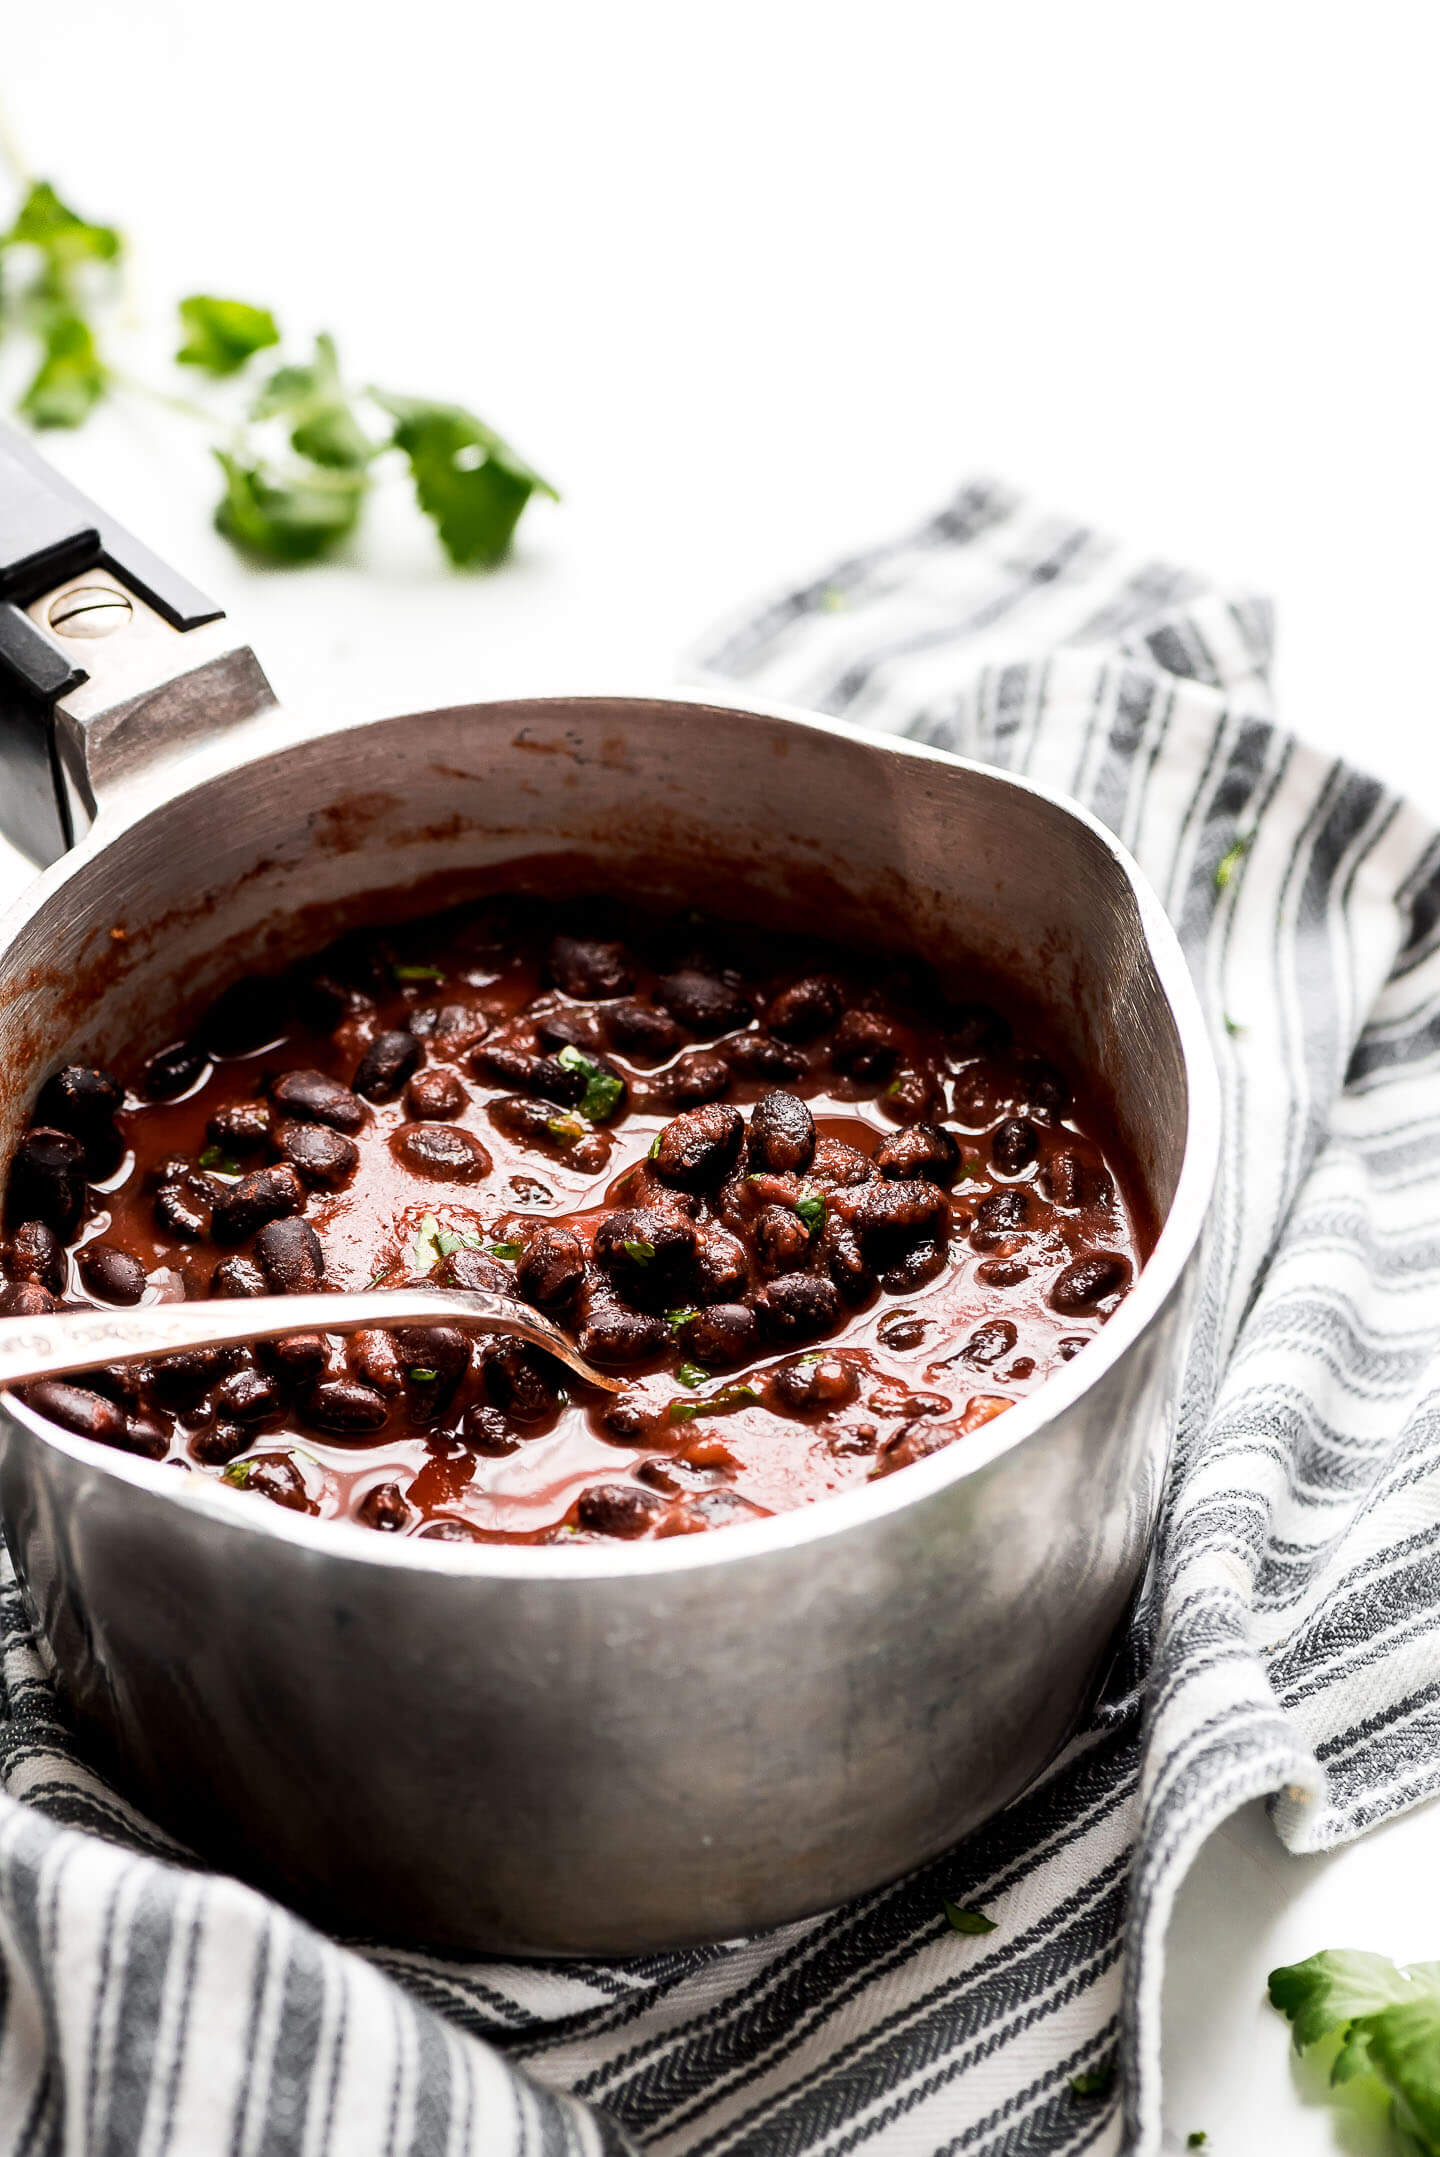 Seasoned Black Beans in a small pot with a spoon lifting some out.